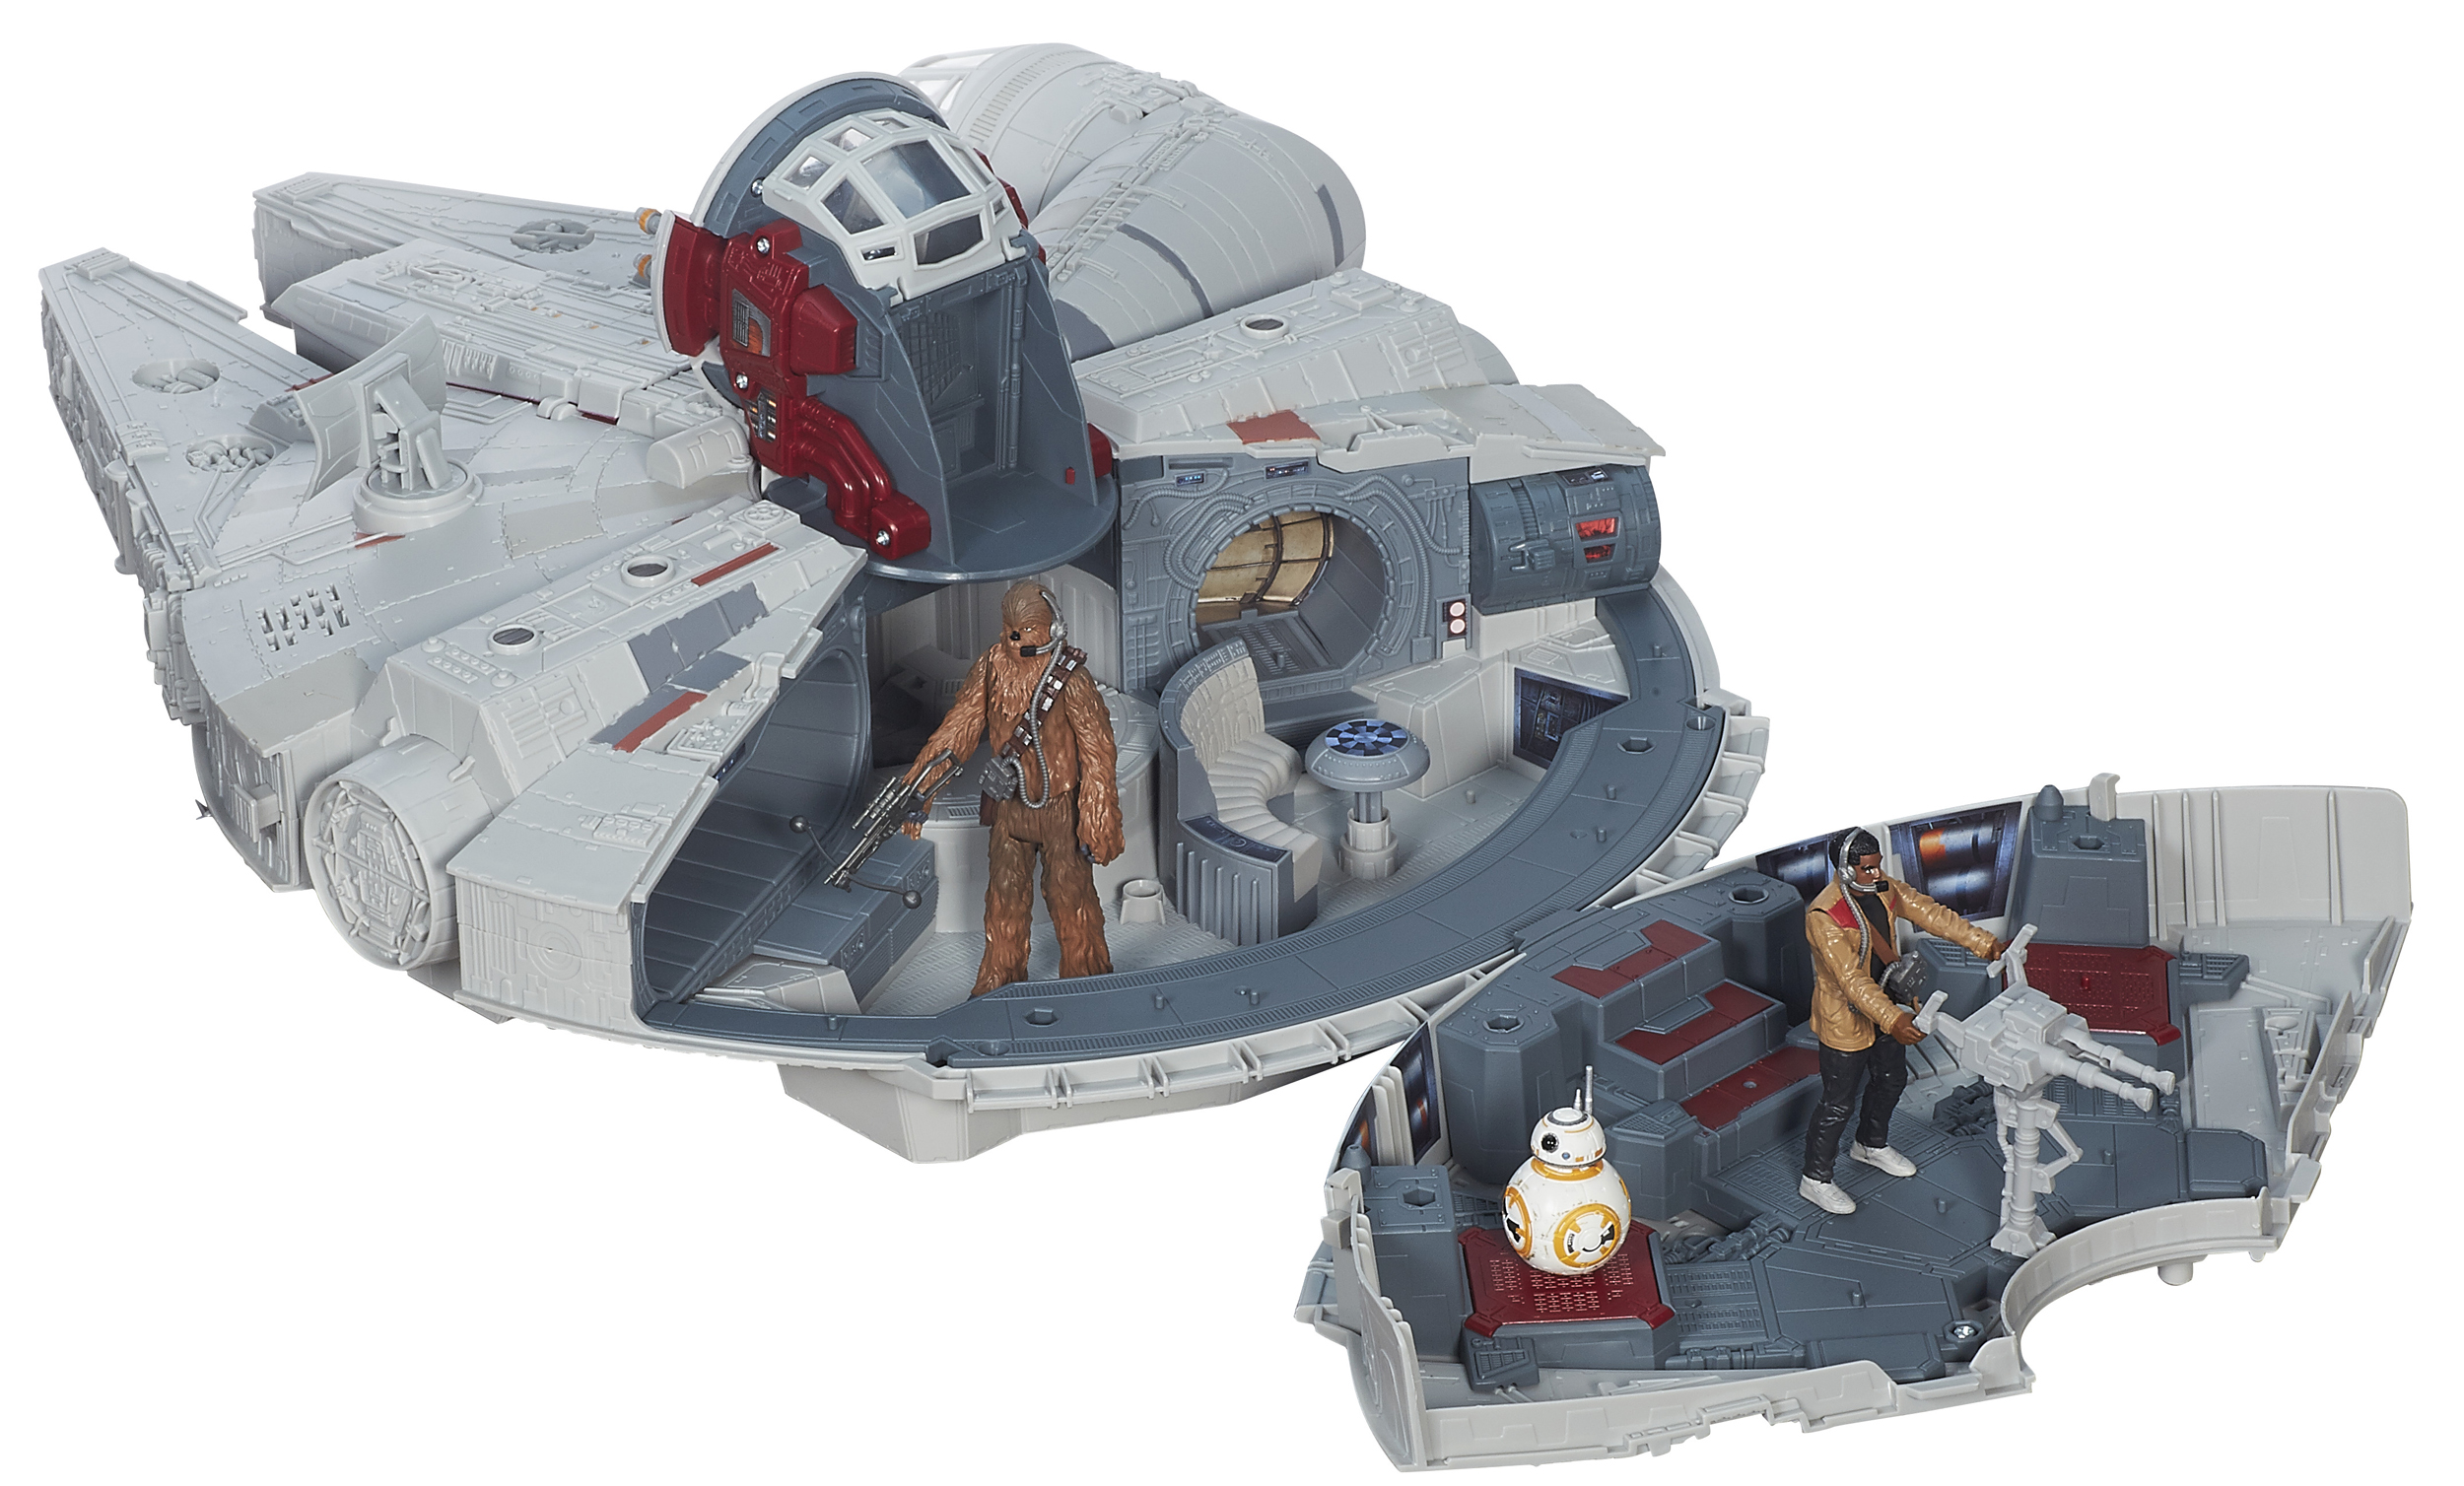 Battle Action Millennium Falcon designed by UC alum Mark Boudreaux.